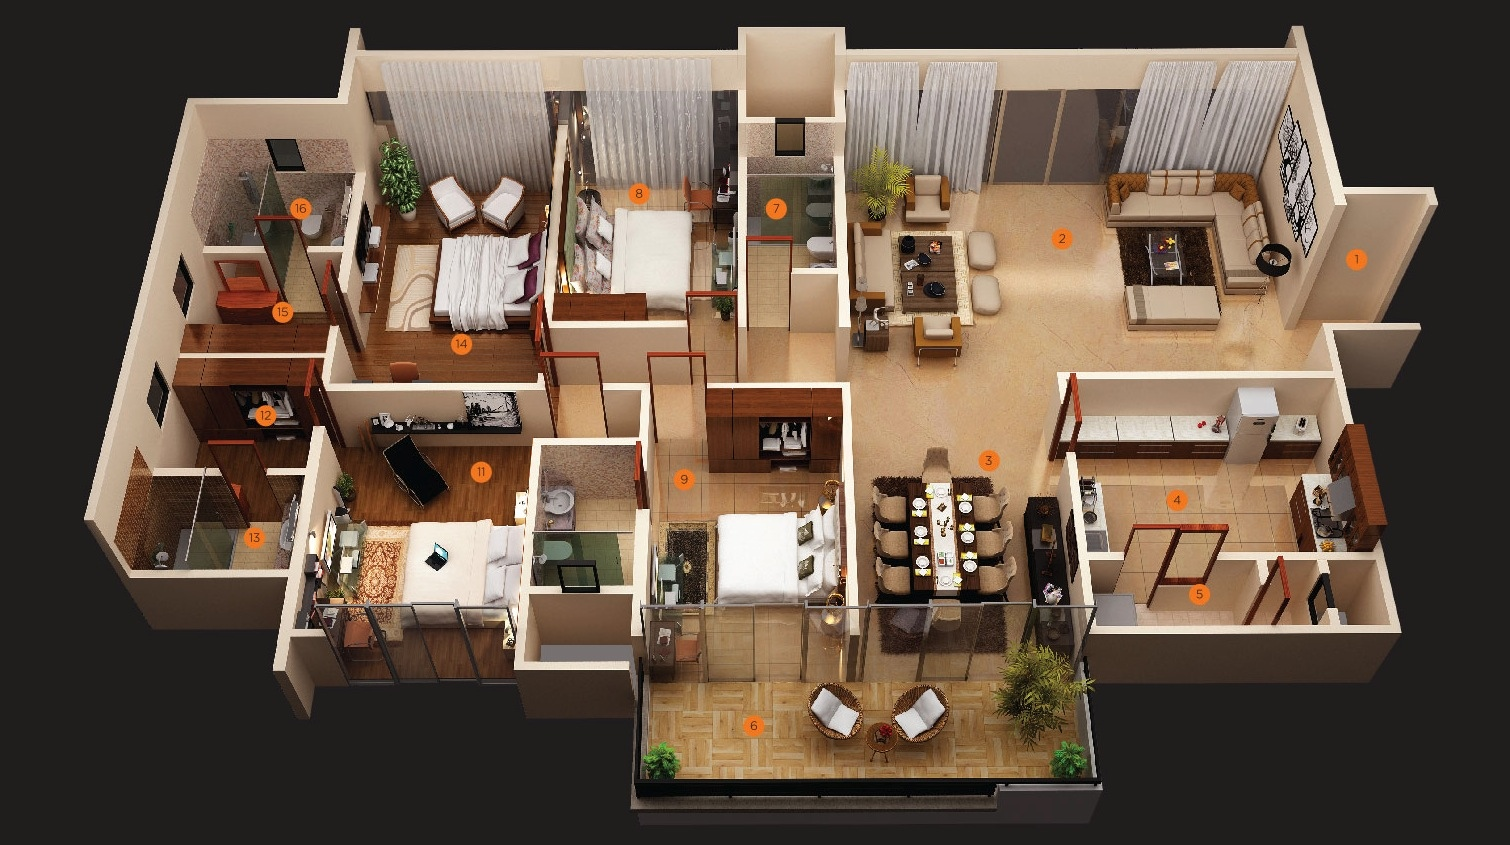 4 bedroom apartment house plans for Bedroom layout ideas